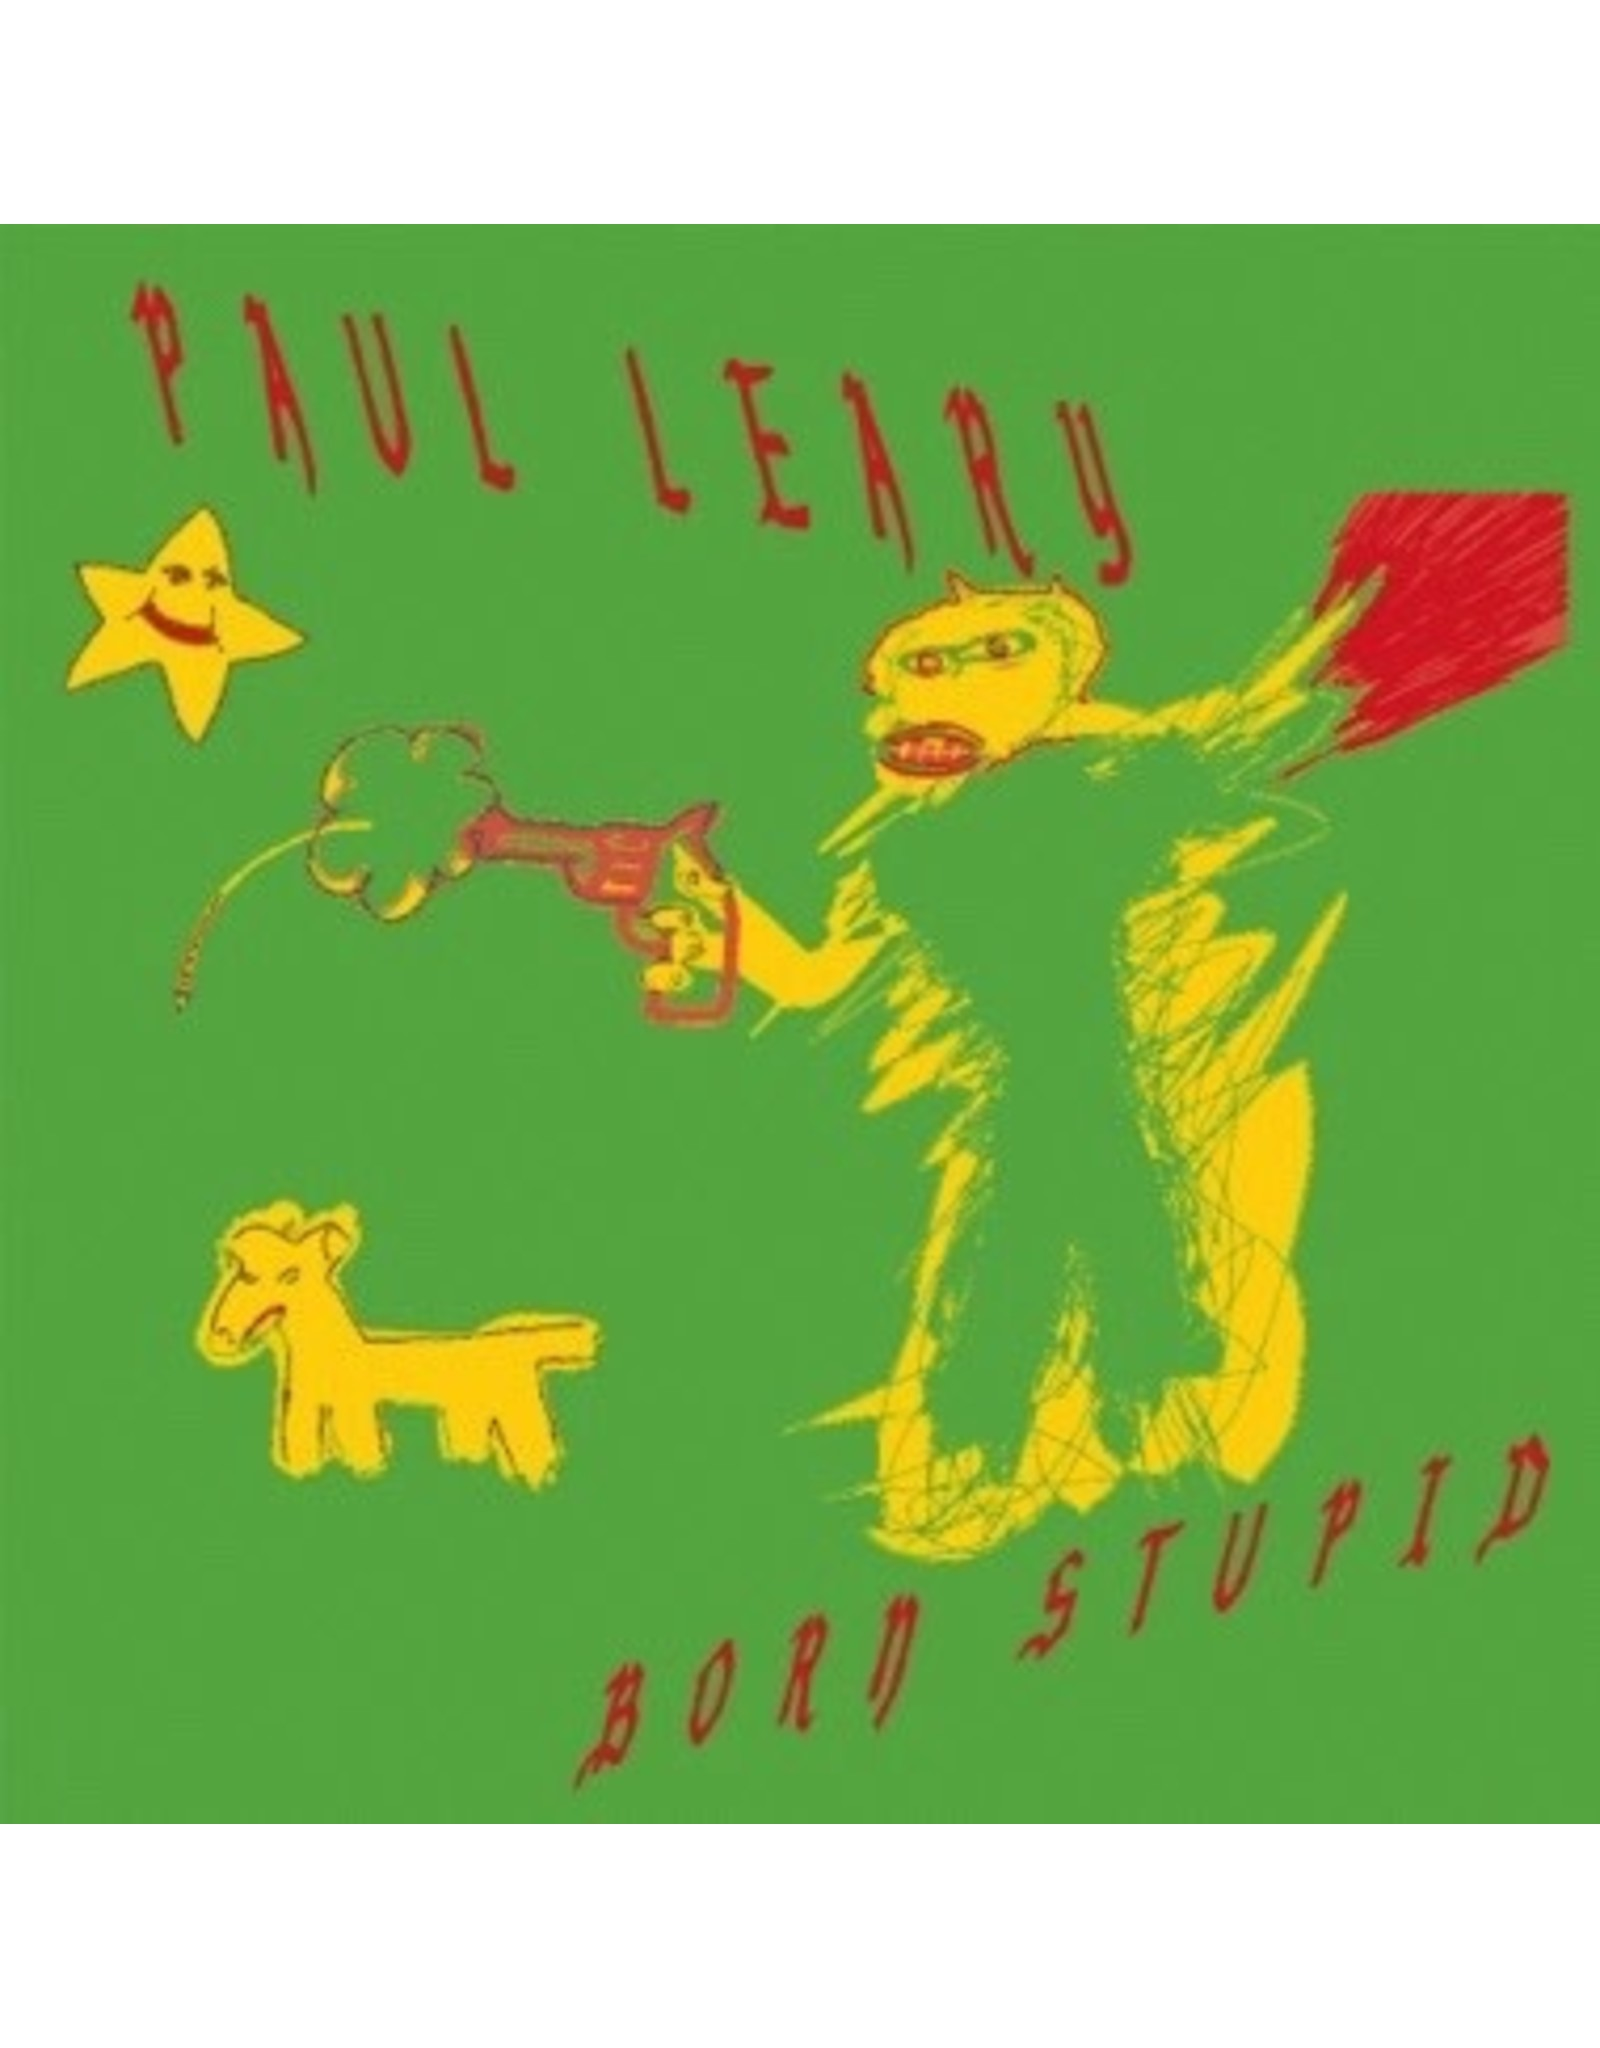 New Vinyl Paul Leary - Born Stupid (Colored) LP